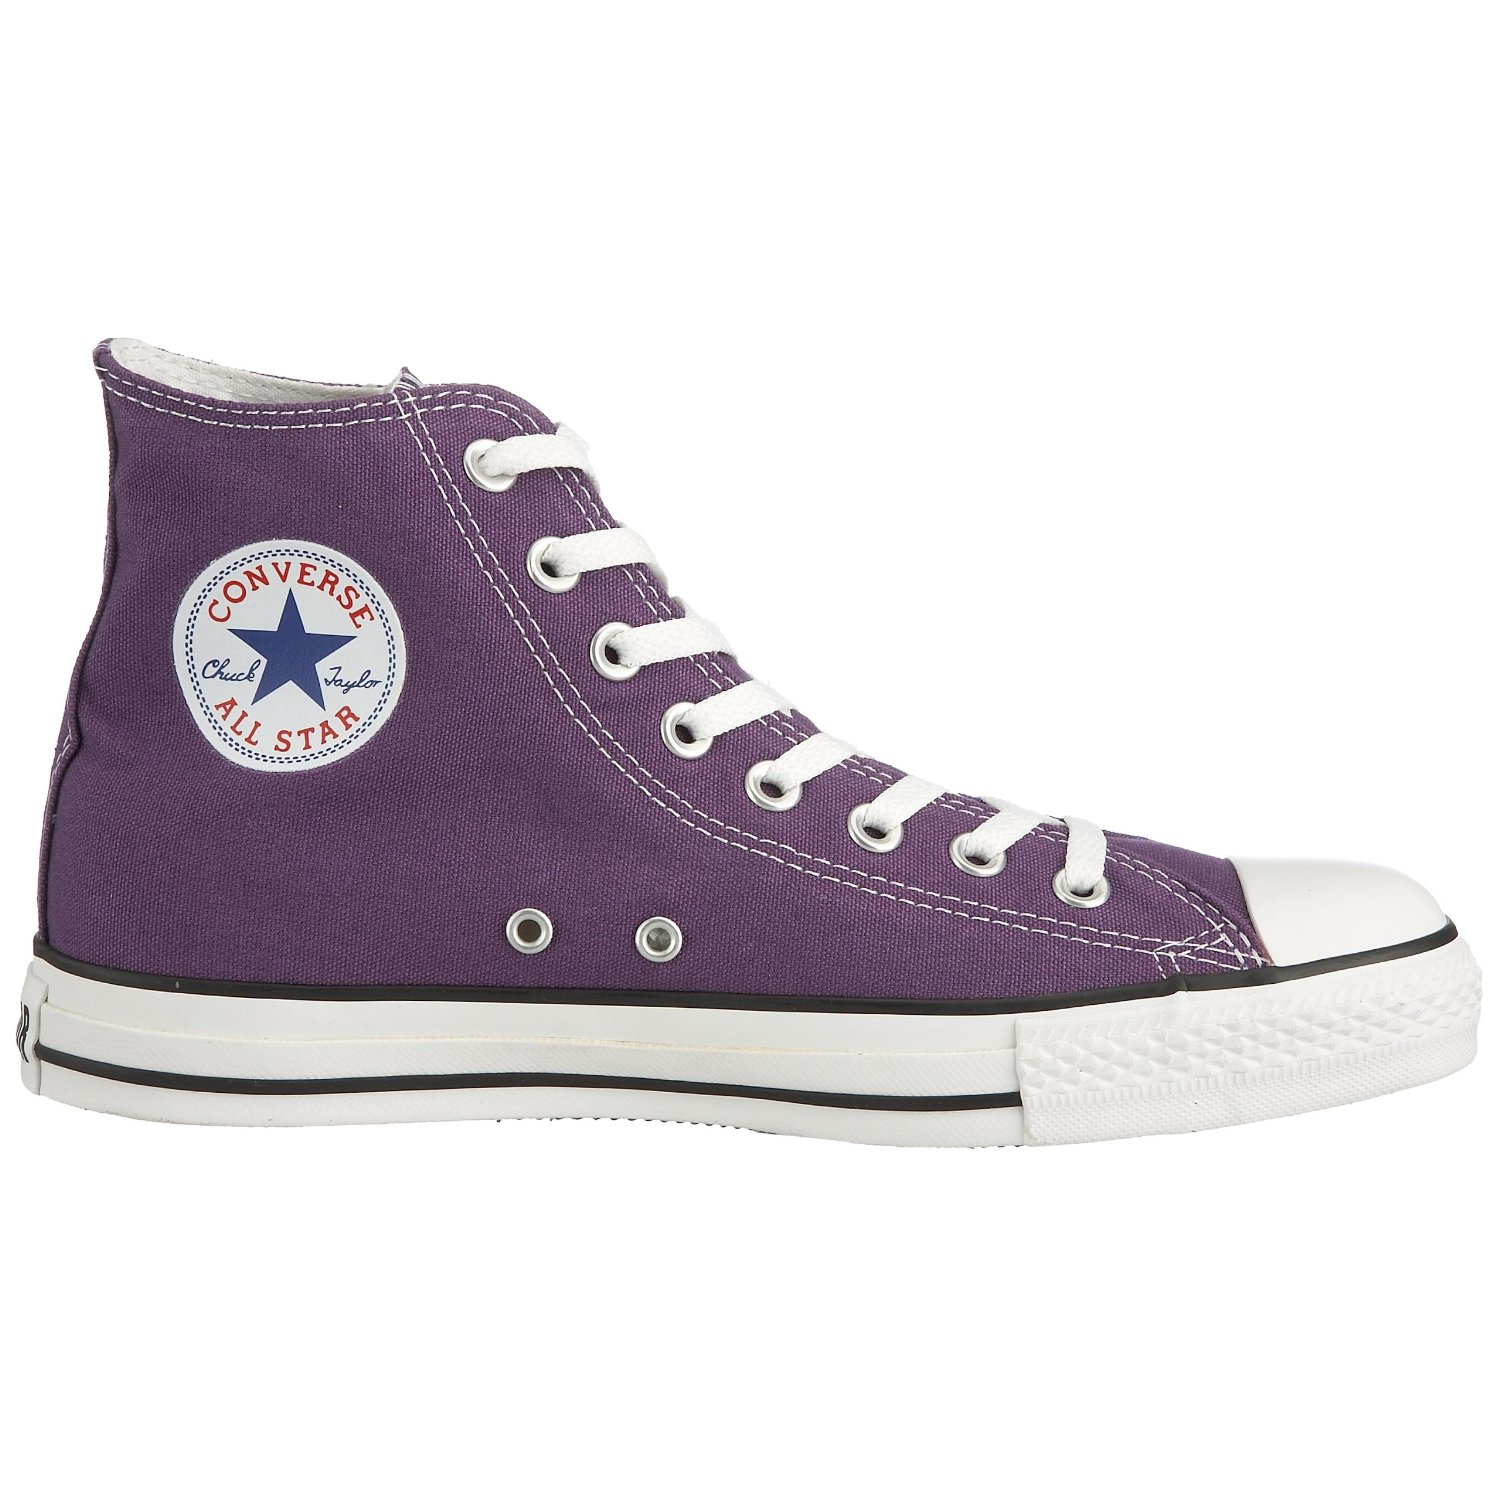 547c5a64dcc2 Purple Converse All Star Hi Top Shoes - Chuck Taylors Converse ...